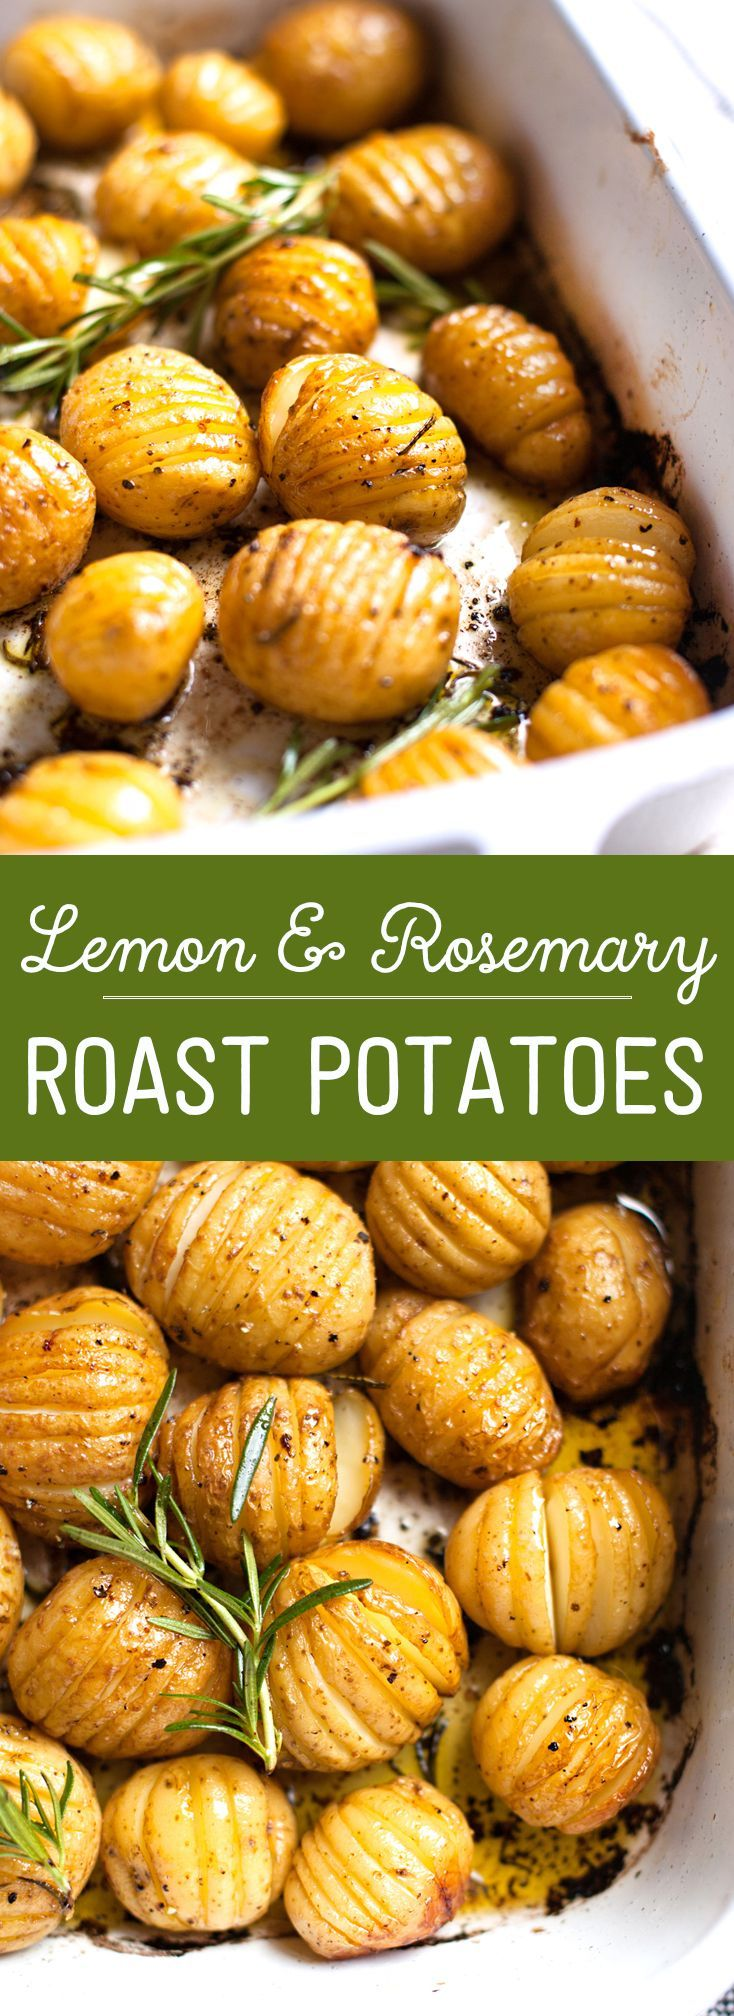 Rosemary and Lemon Roasted Baby Potatoes